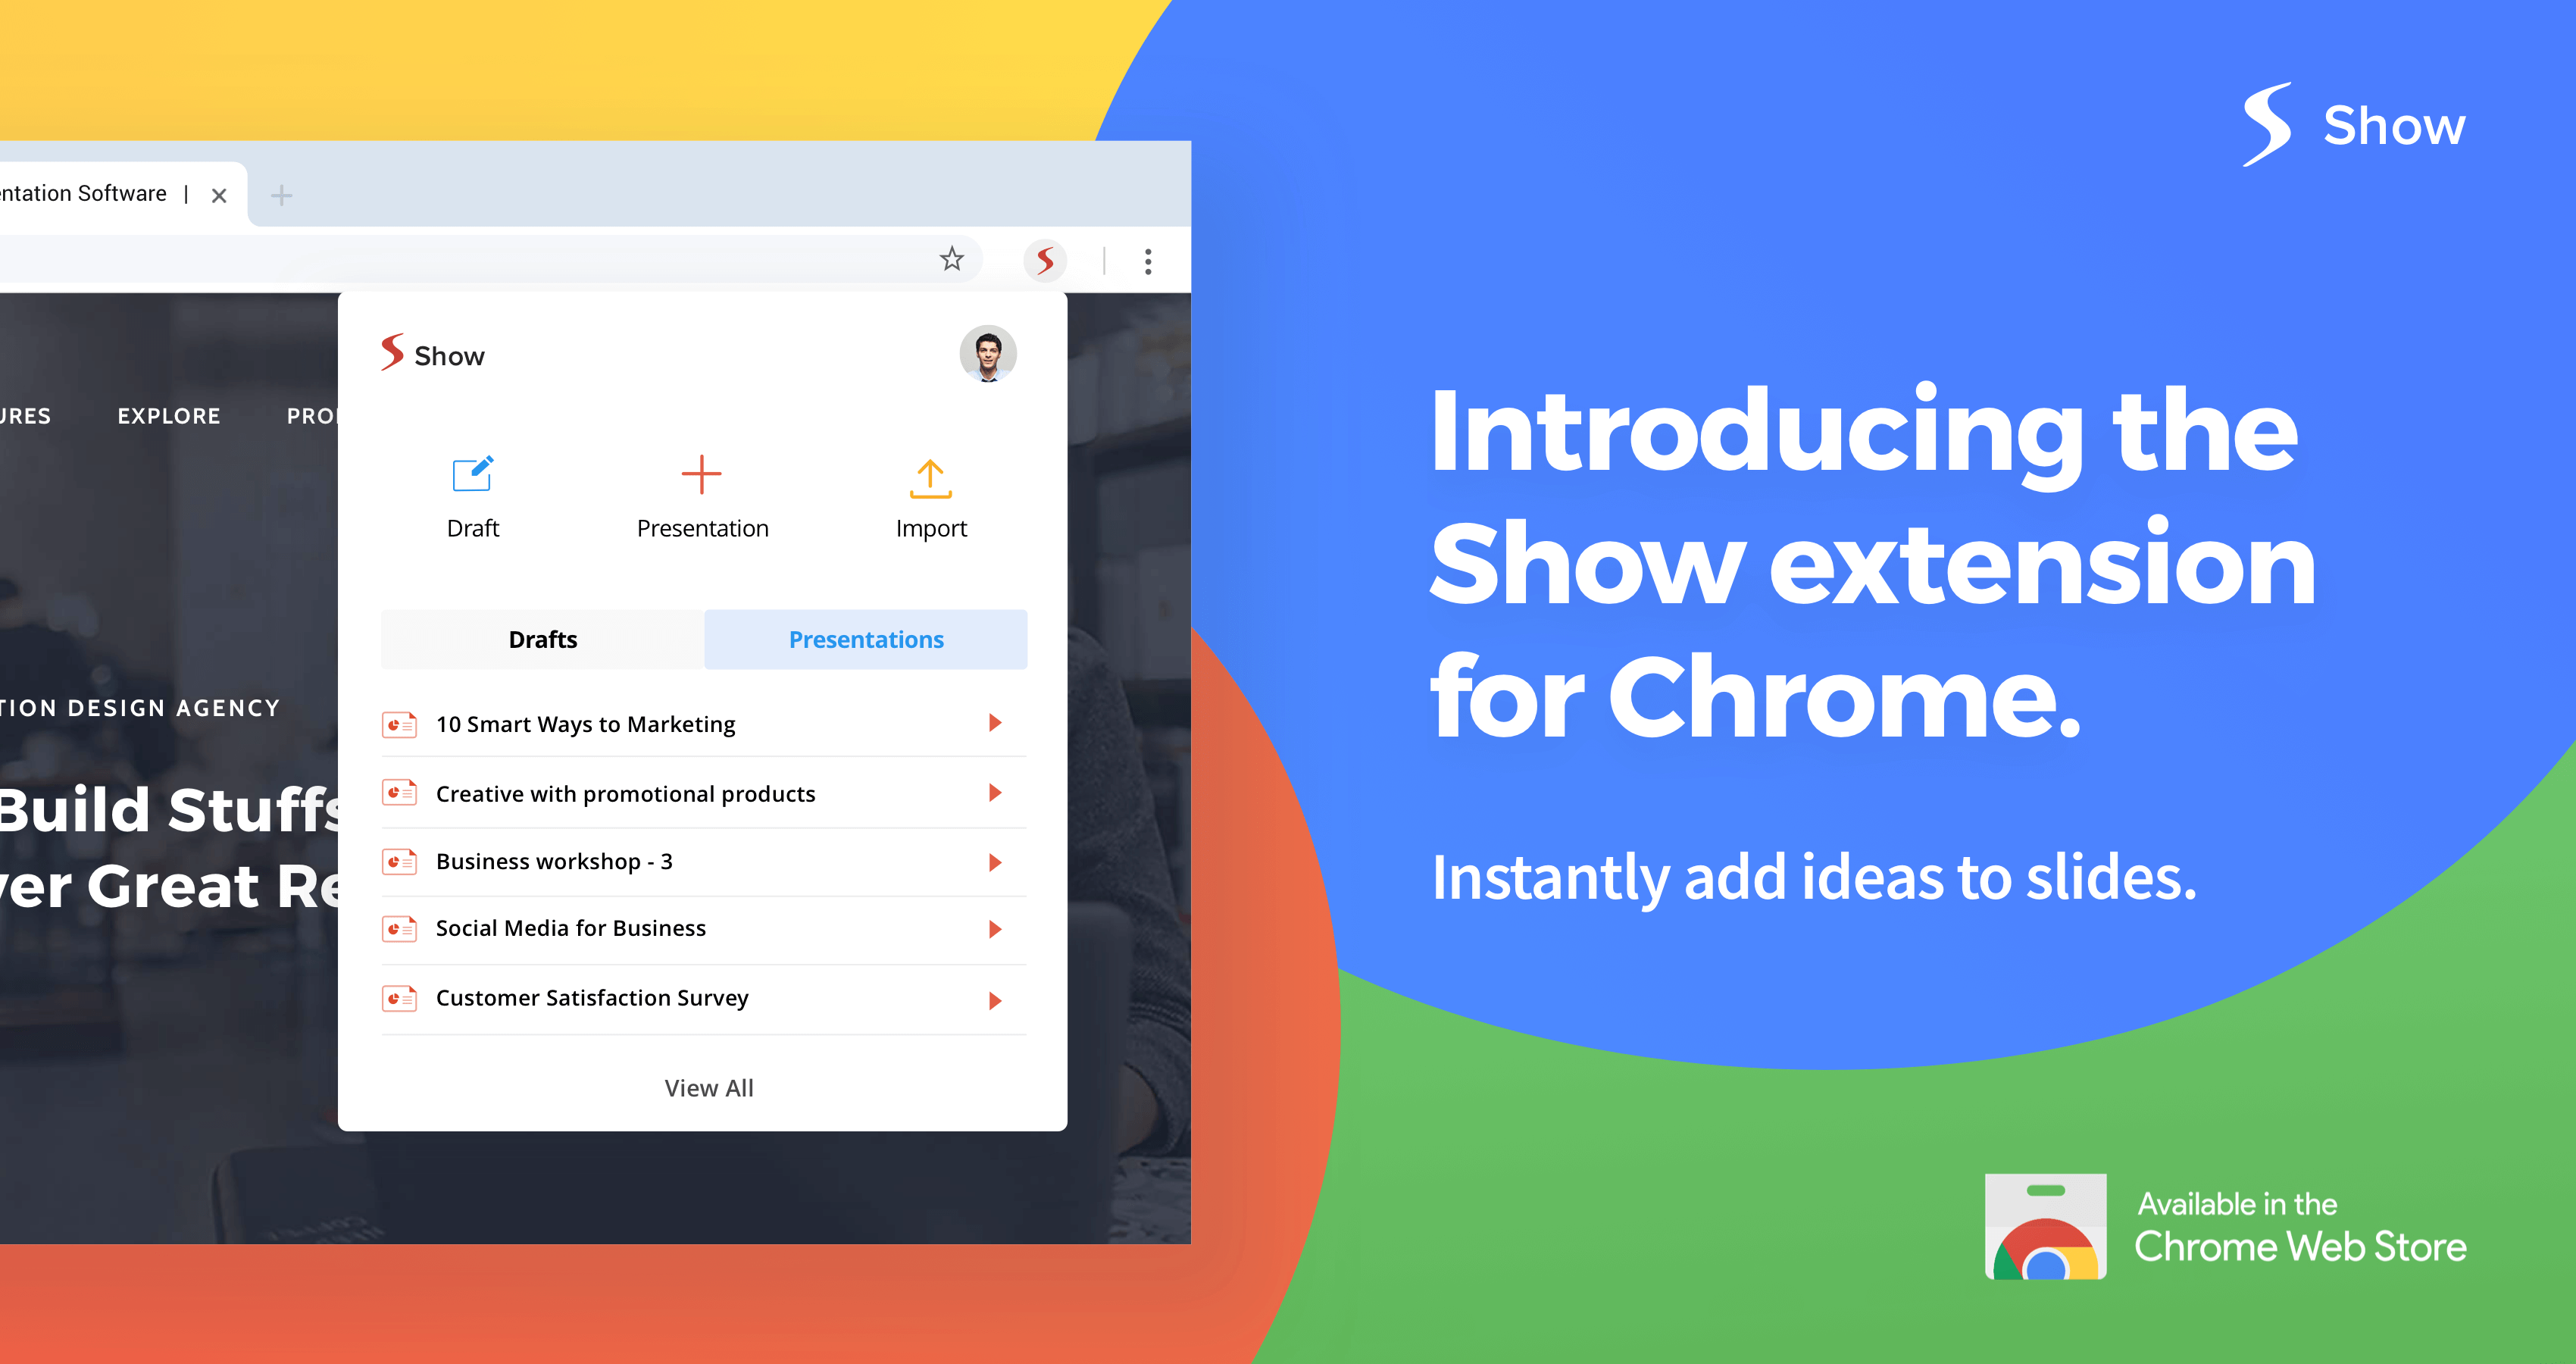 Create and edit presentations right from your browser with Zoho Show's new Chrome extension